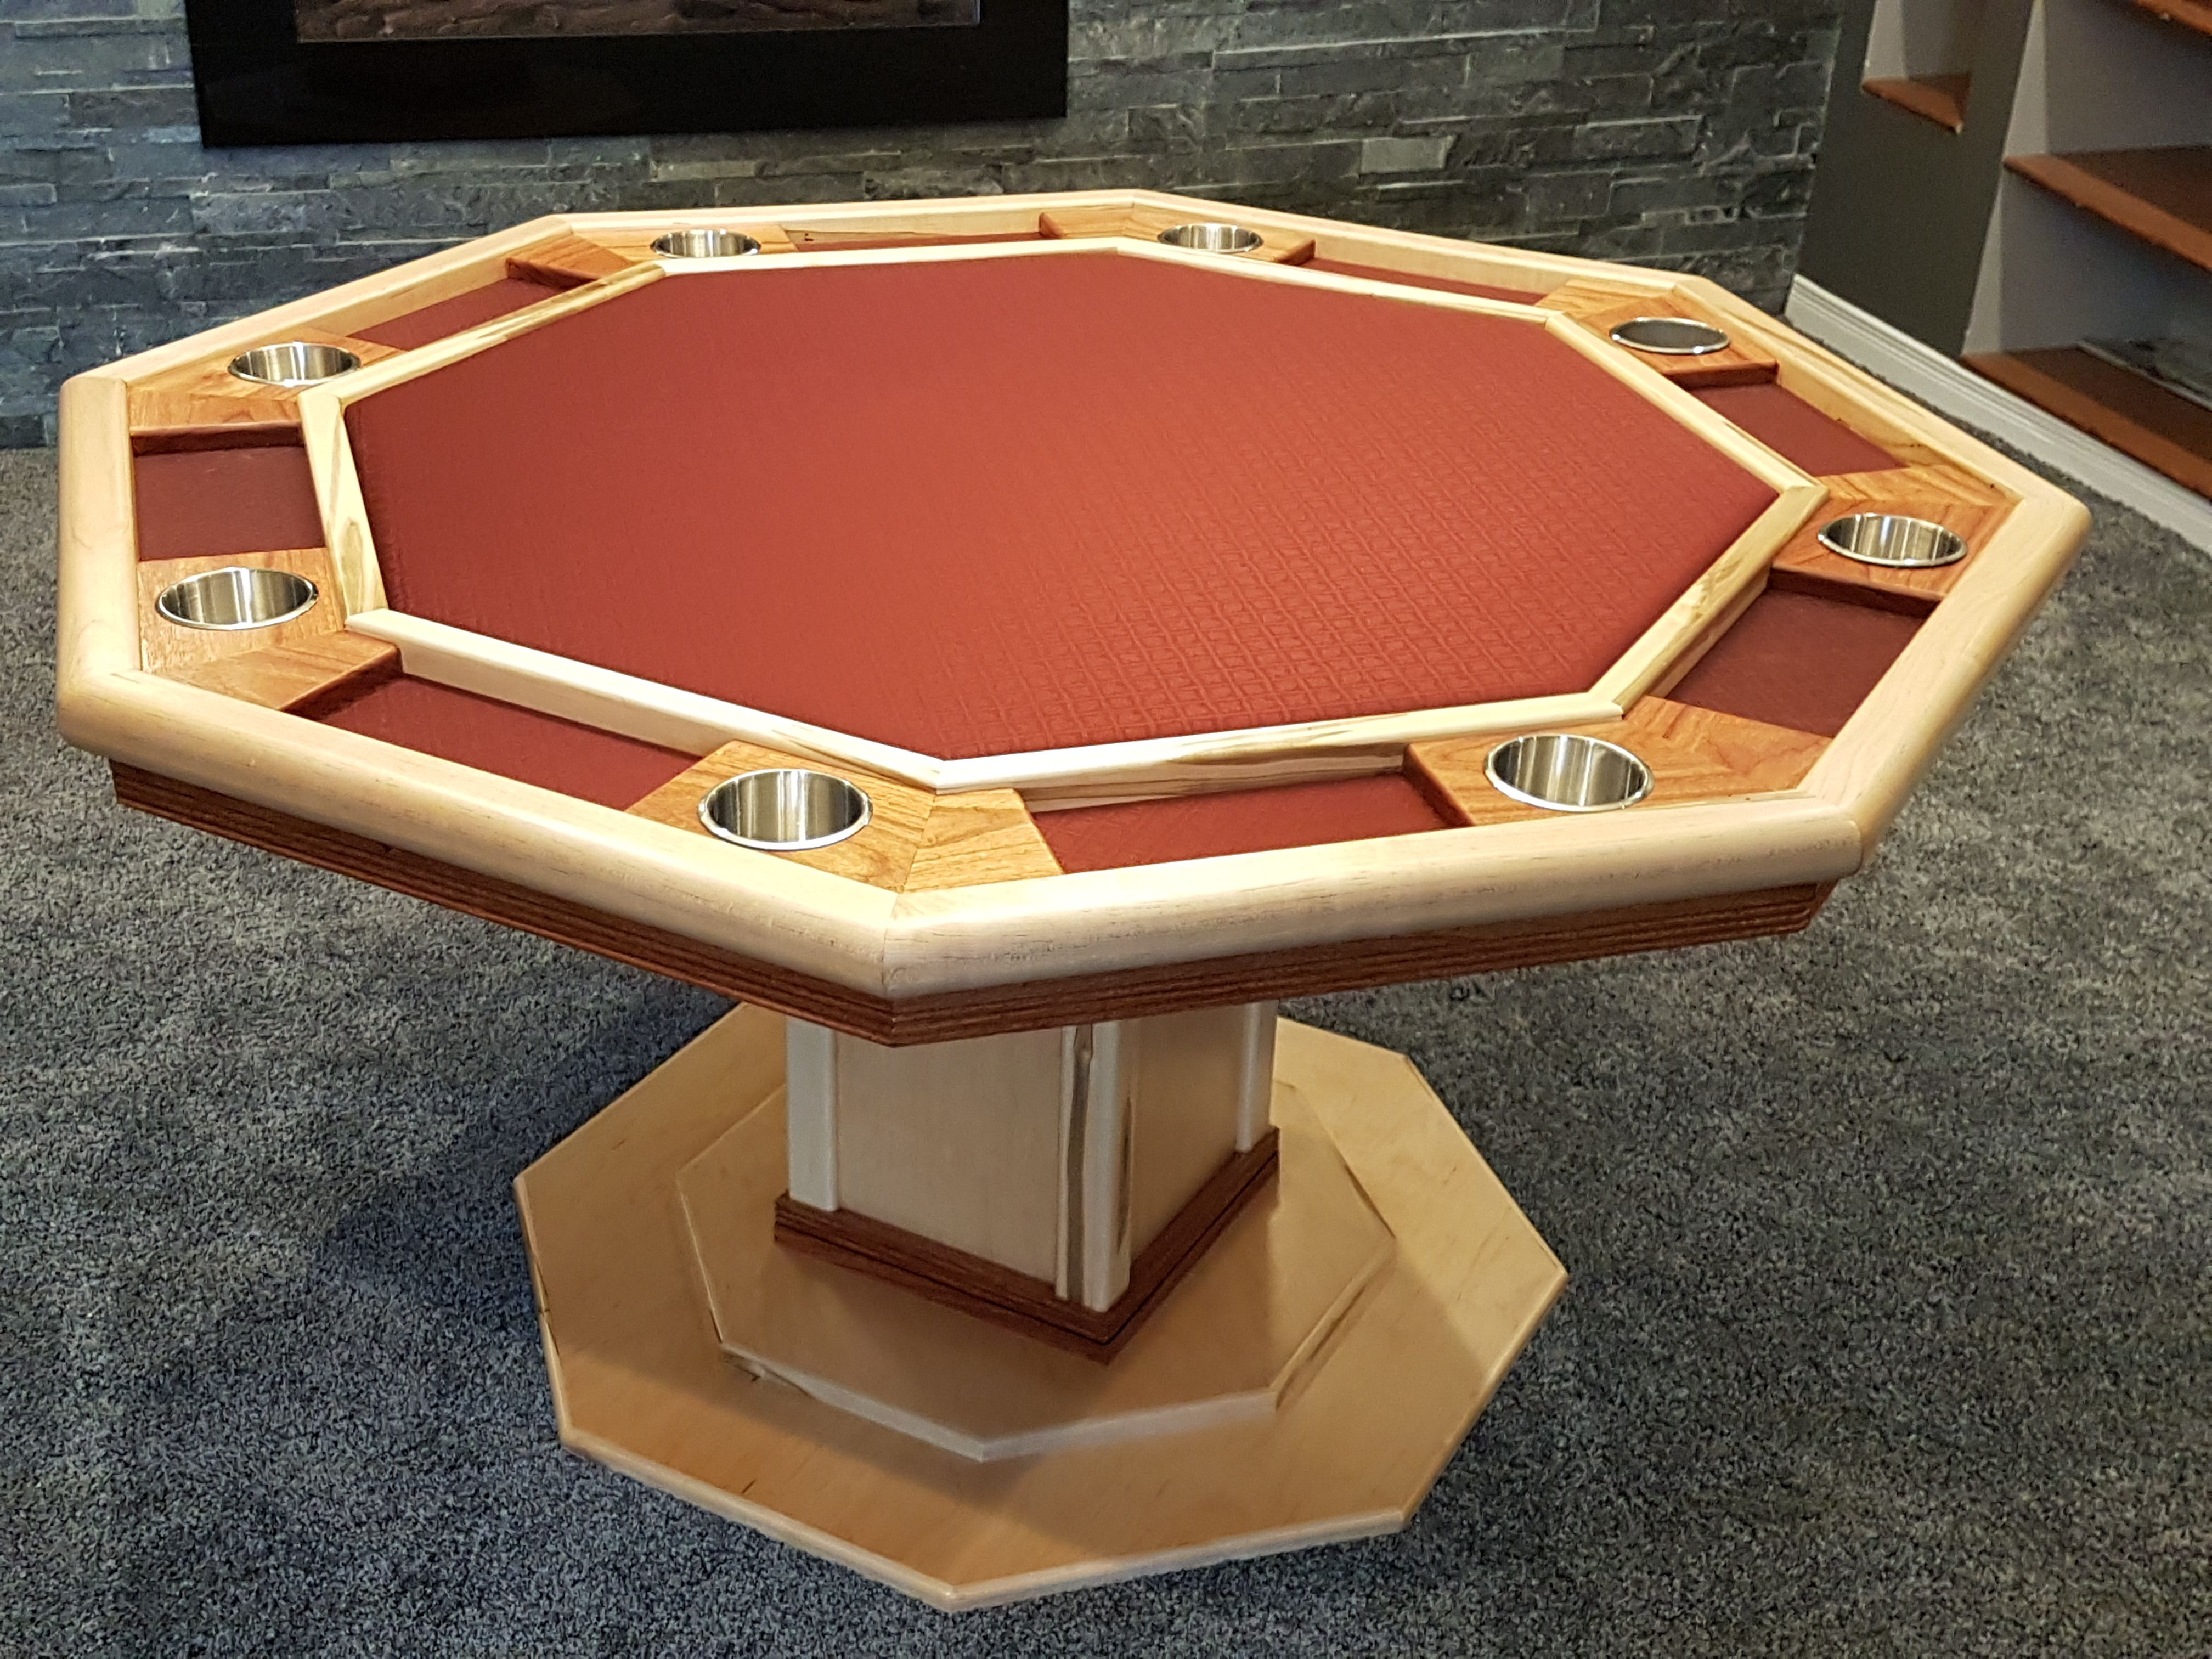 Octagonal Poker Table Ambrosia Maple And Canary Wood Poker Table Plans Poker Table Diy Custom Poker Tables